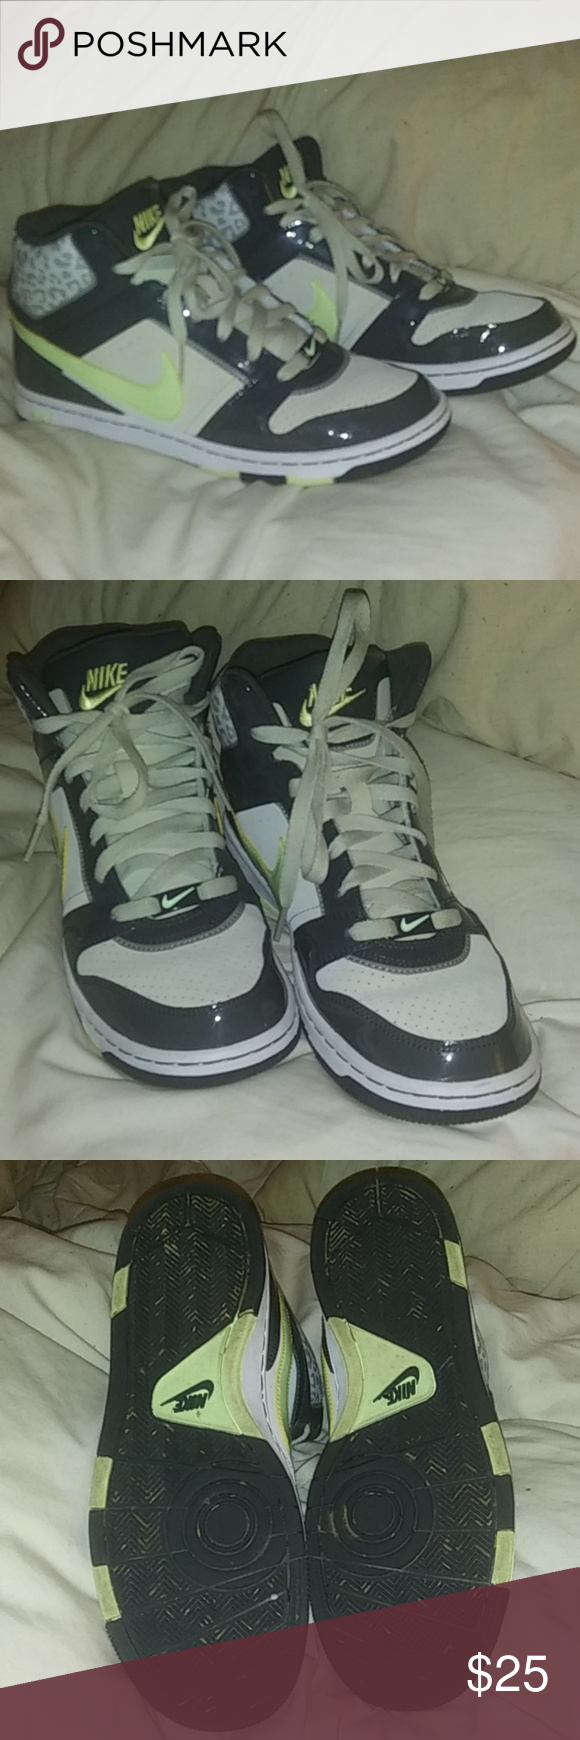 90f5be11974c6 NIKE AIR PRESTIGE 3 Skinny High Tops Grey vinyl with pink leopard print and  yellow swoosh. Excellent condition